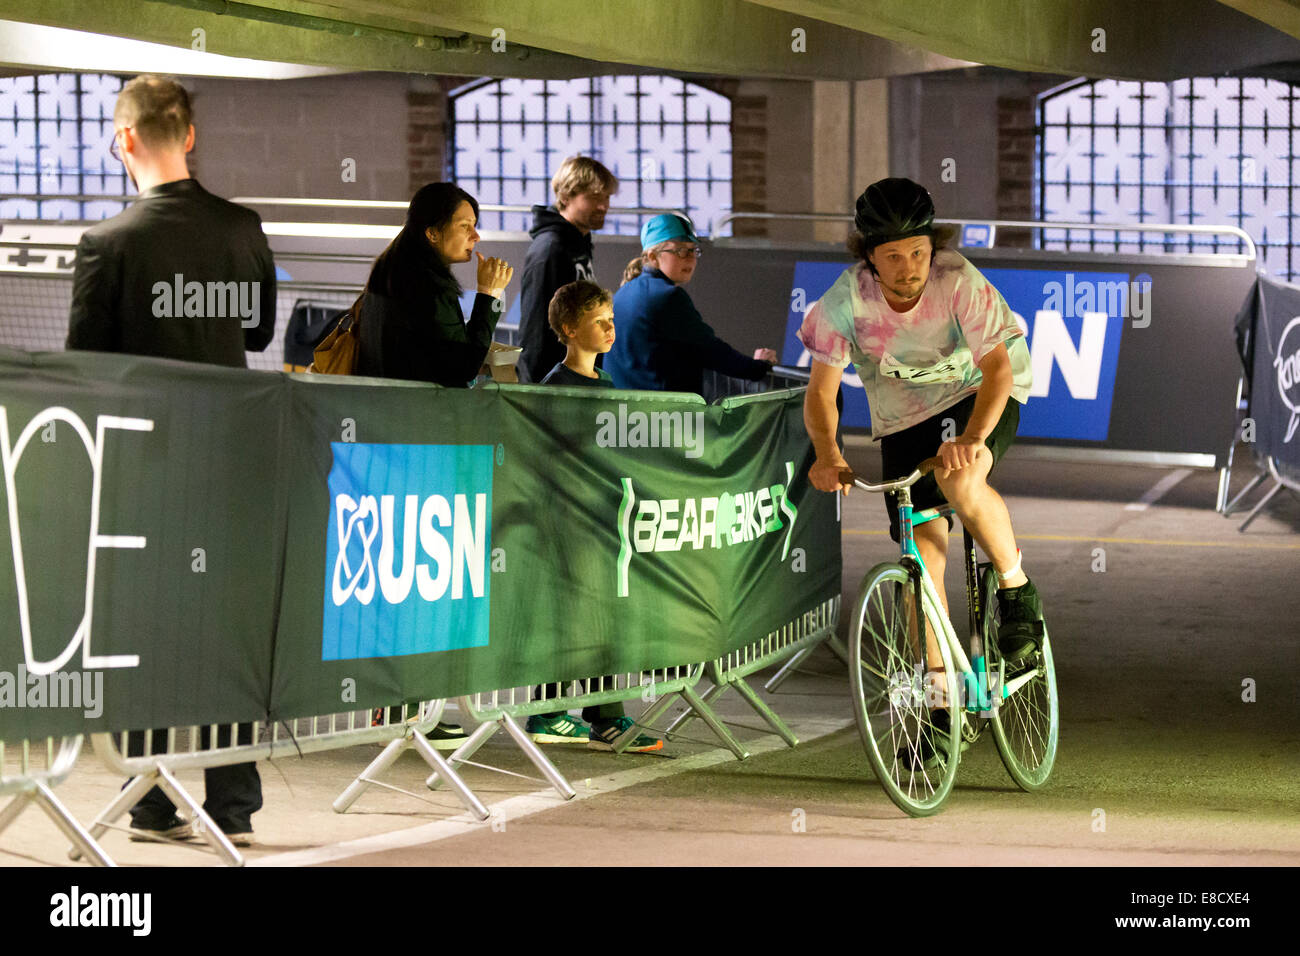 Mateusz CALKA (128) at Parkour Ride a multi-discipline cycling event held in an abandoned multi-storey car park, - Stock Image